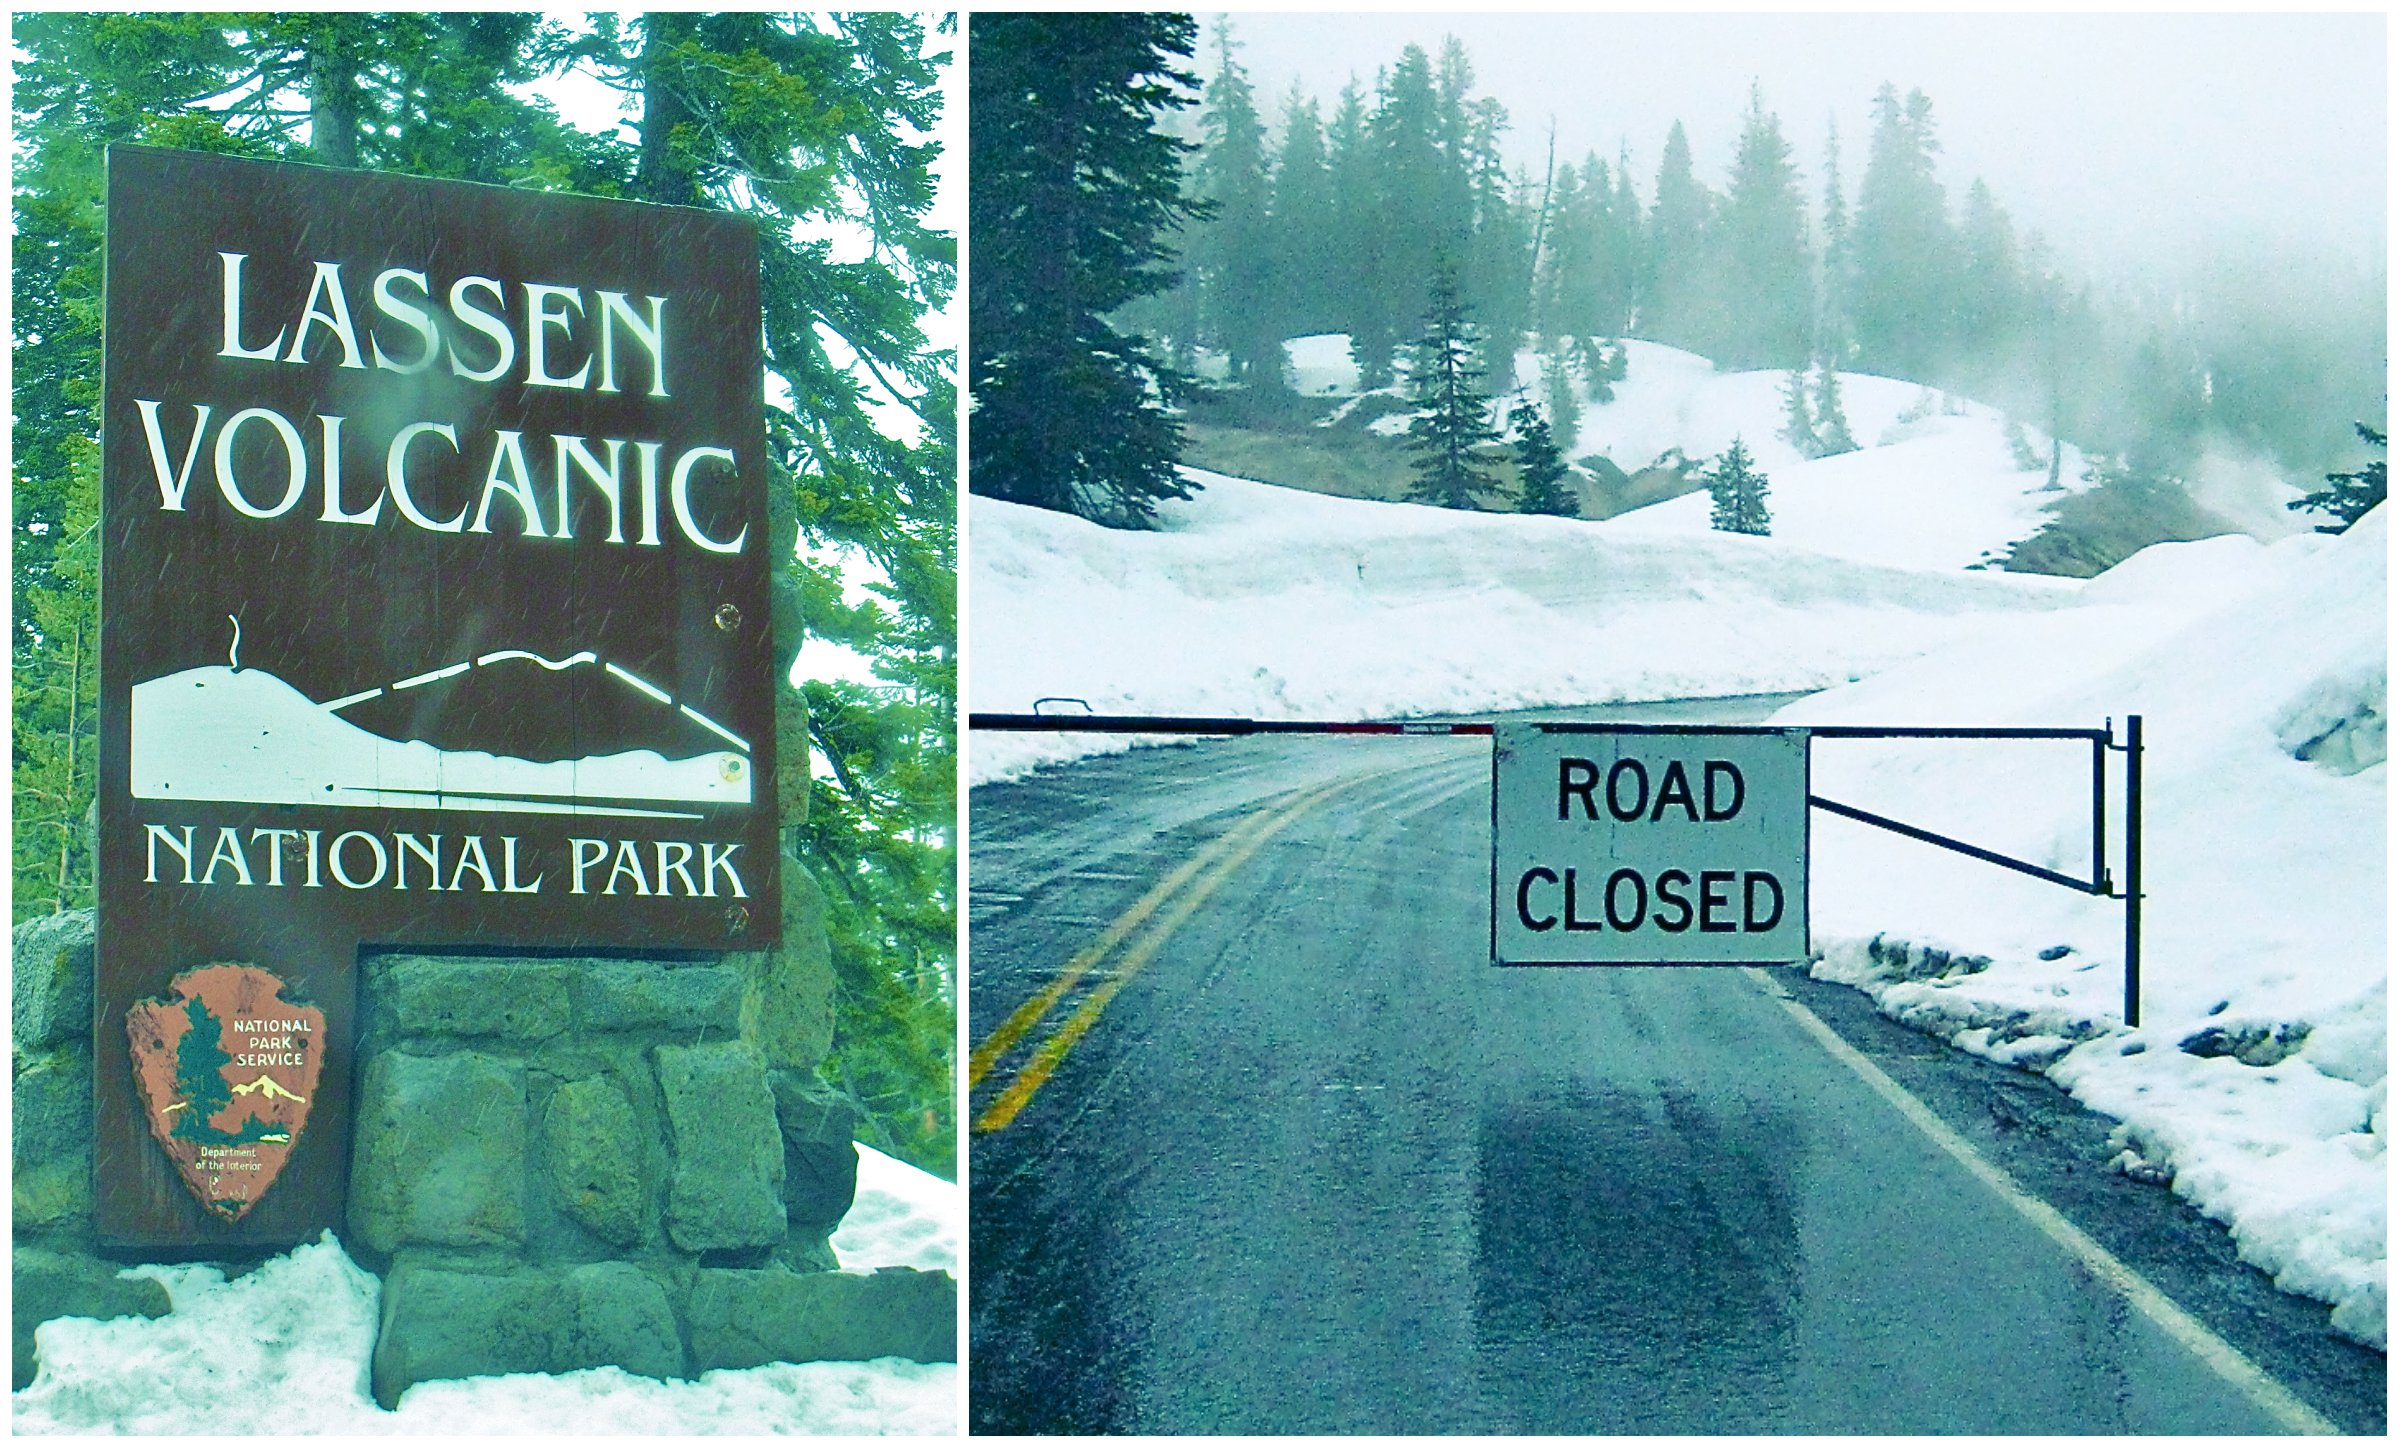 Lassen Volcanic Rod Closed